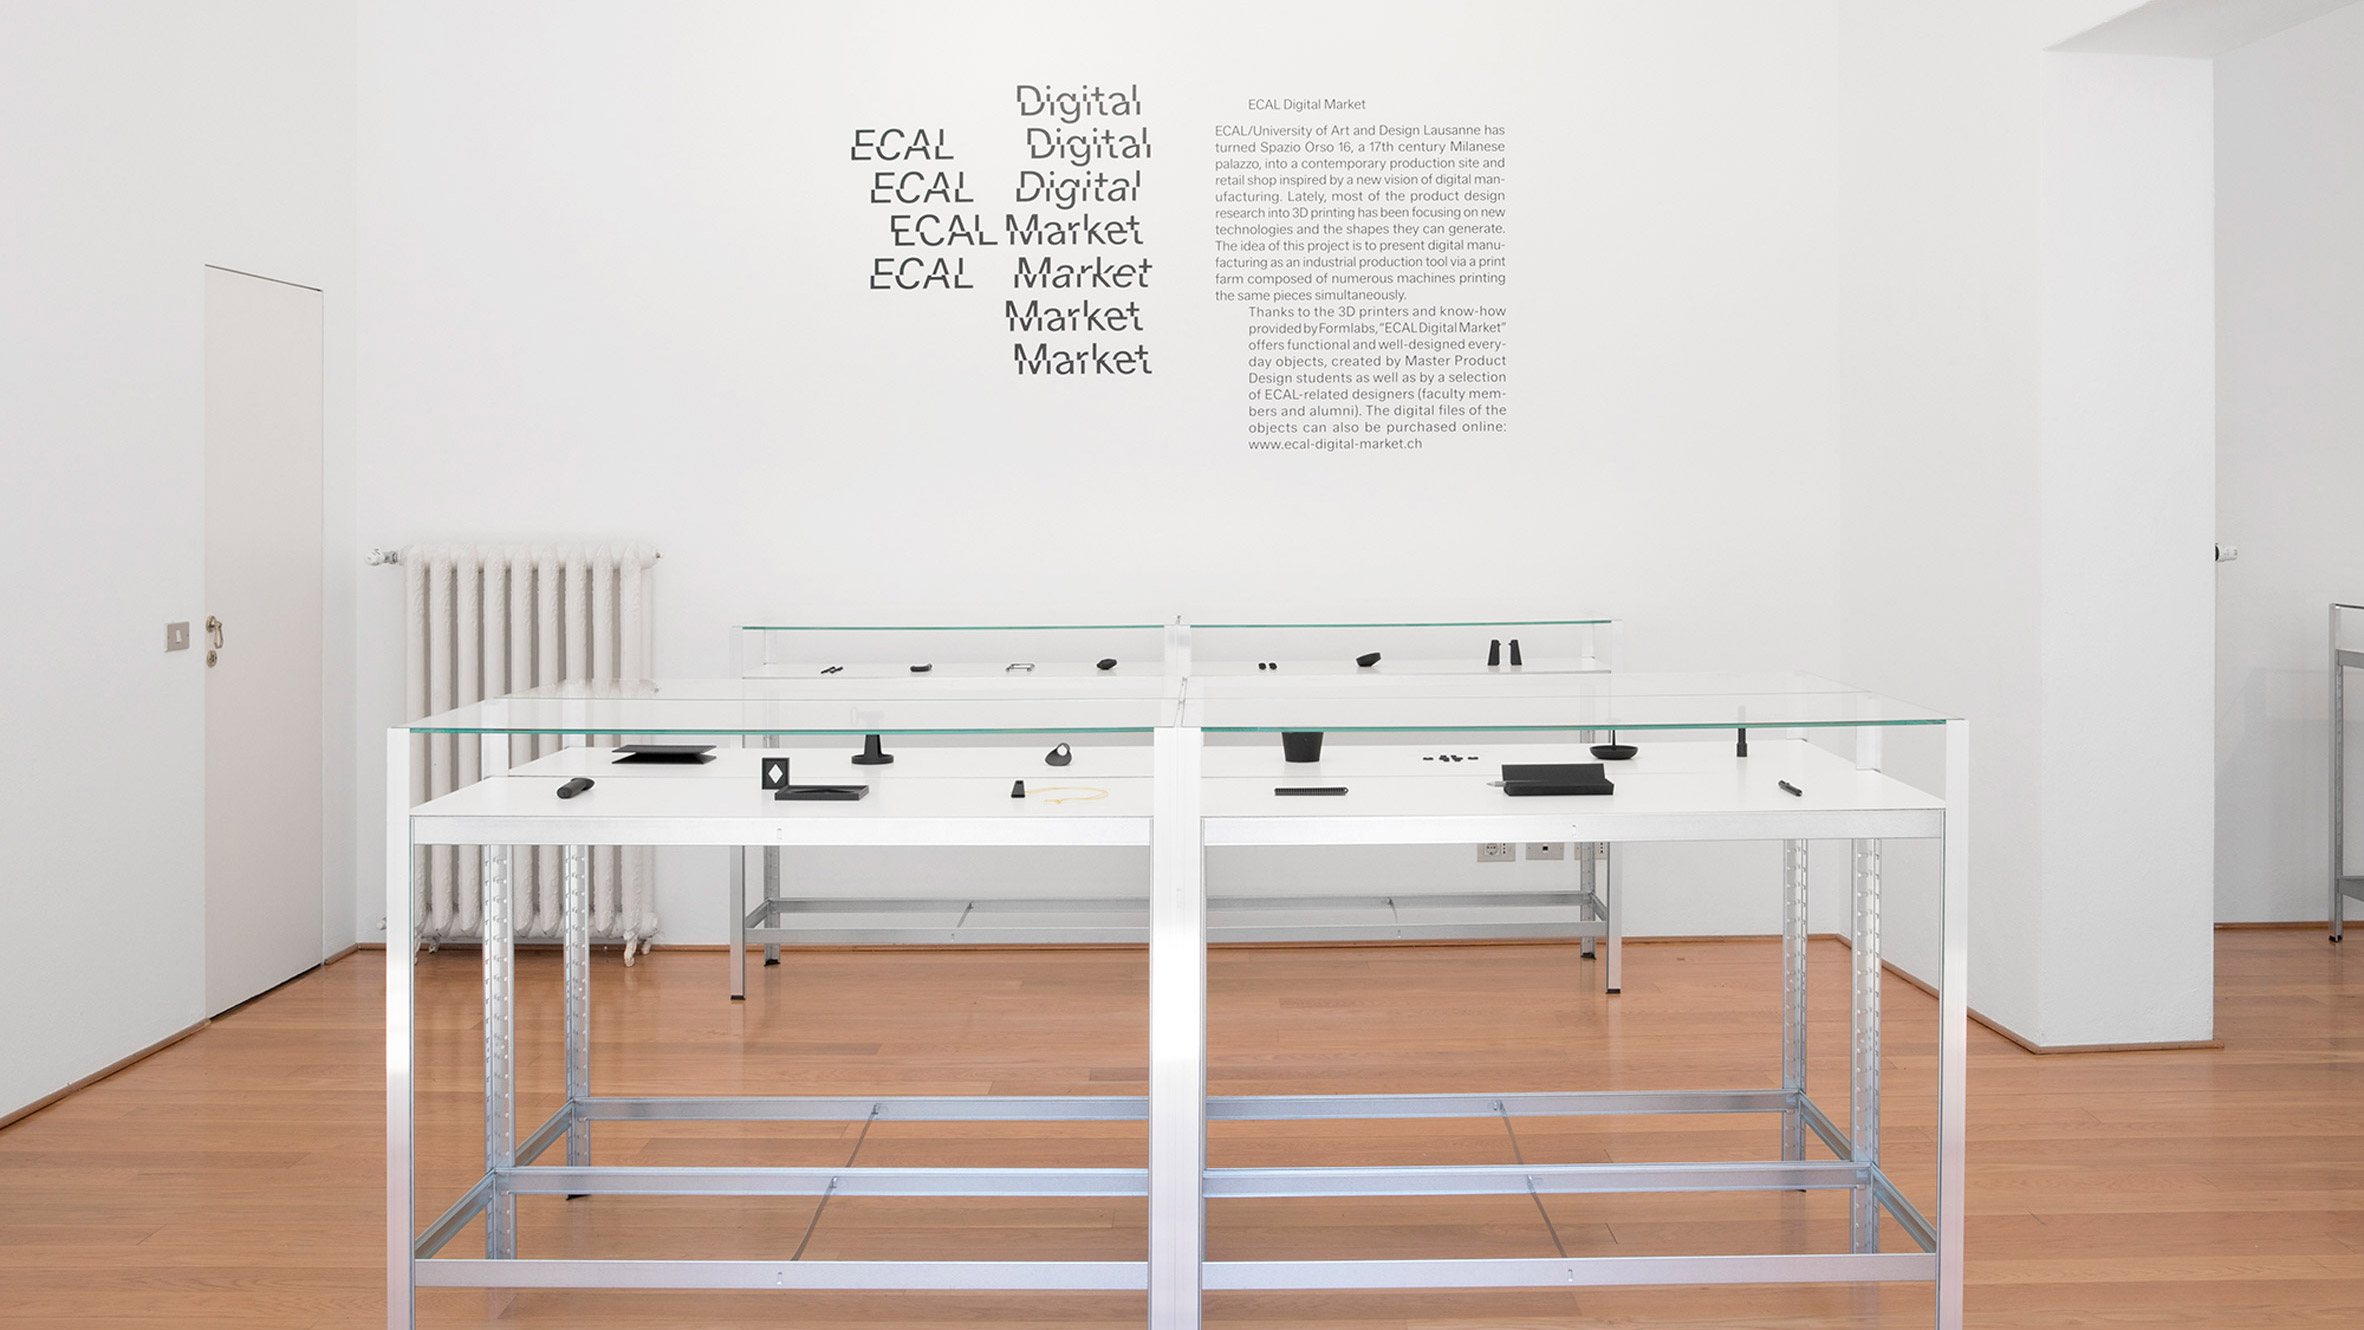 Printing houses of Ronen region: a selection of sites